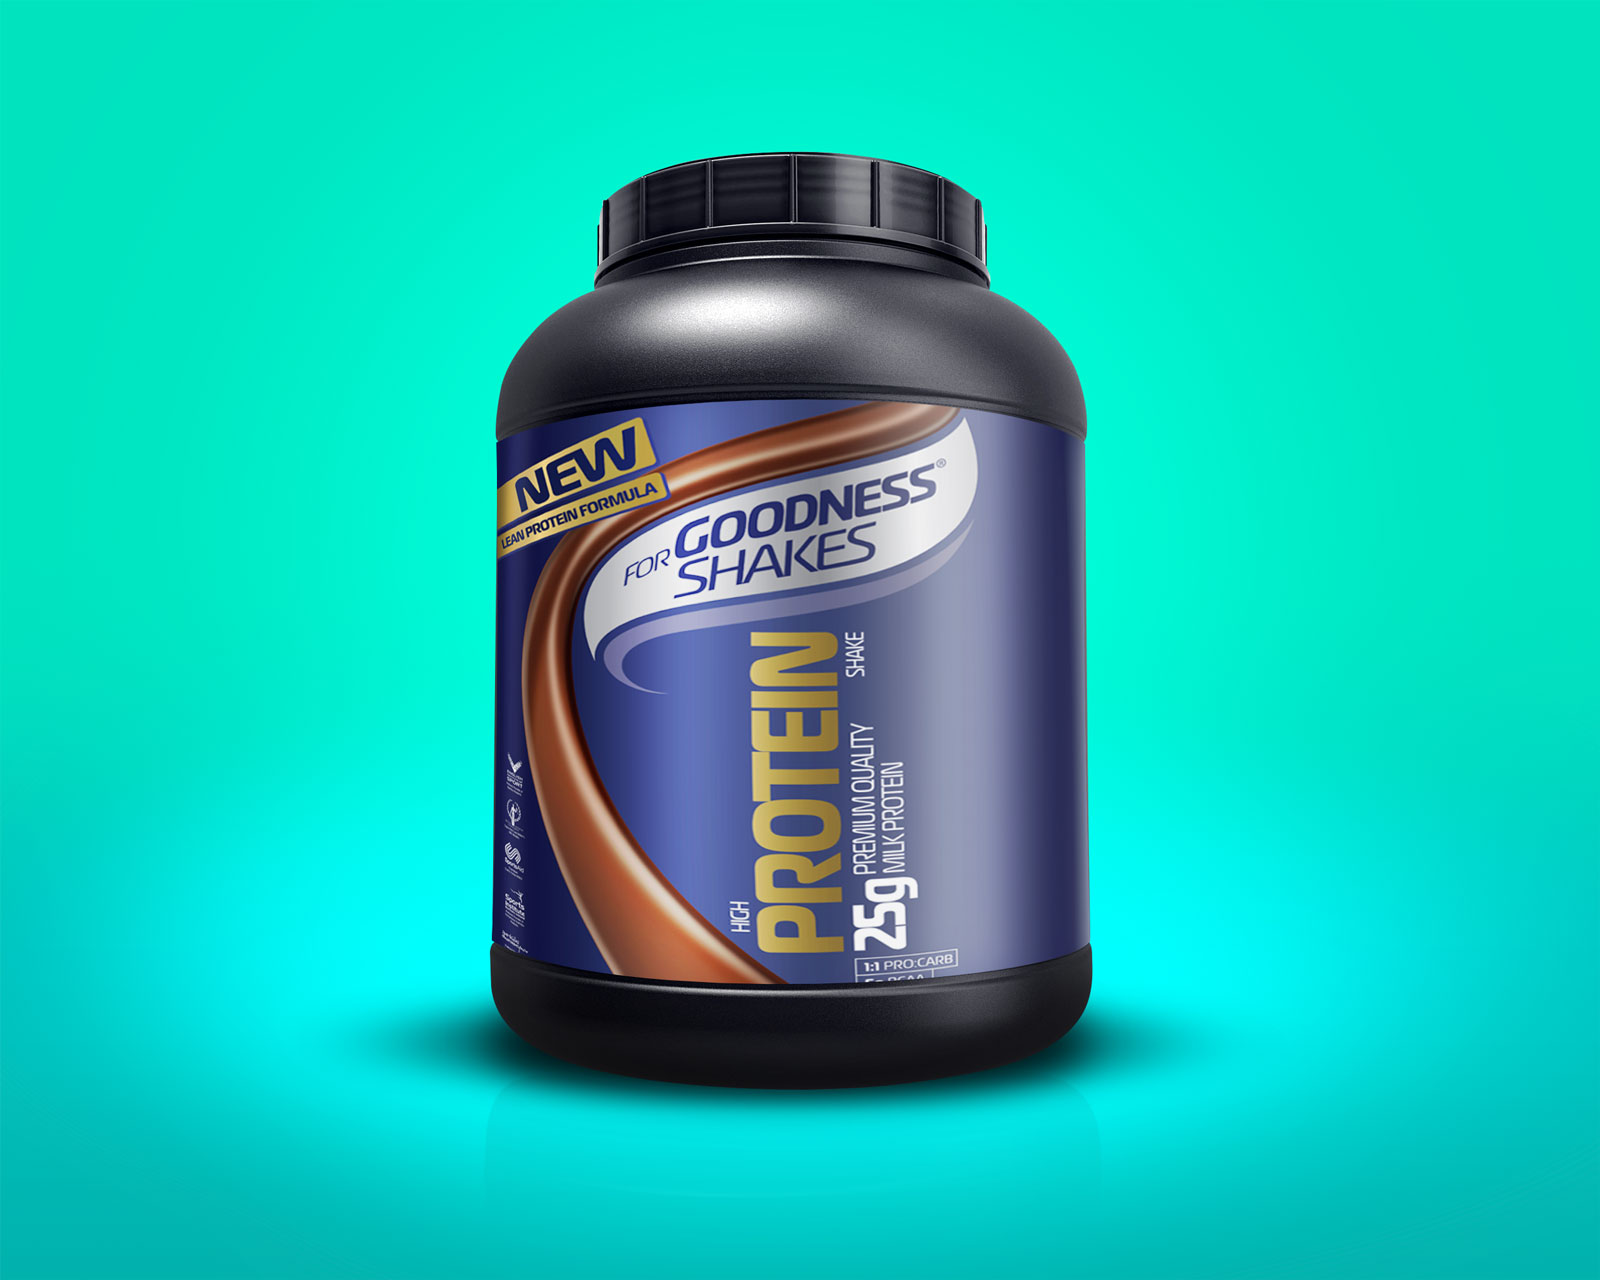 Free-Protein-Supplement-Powder-Bottle-Mockup-PSD